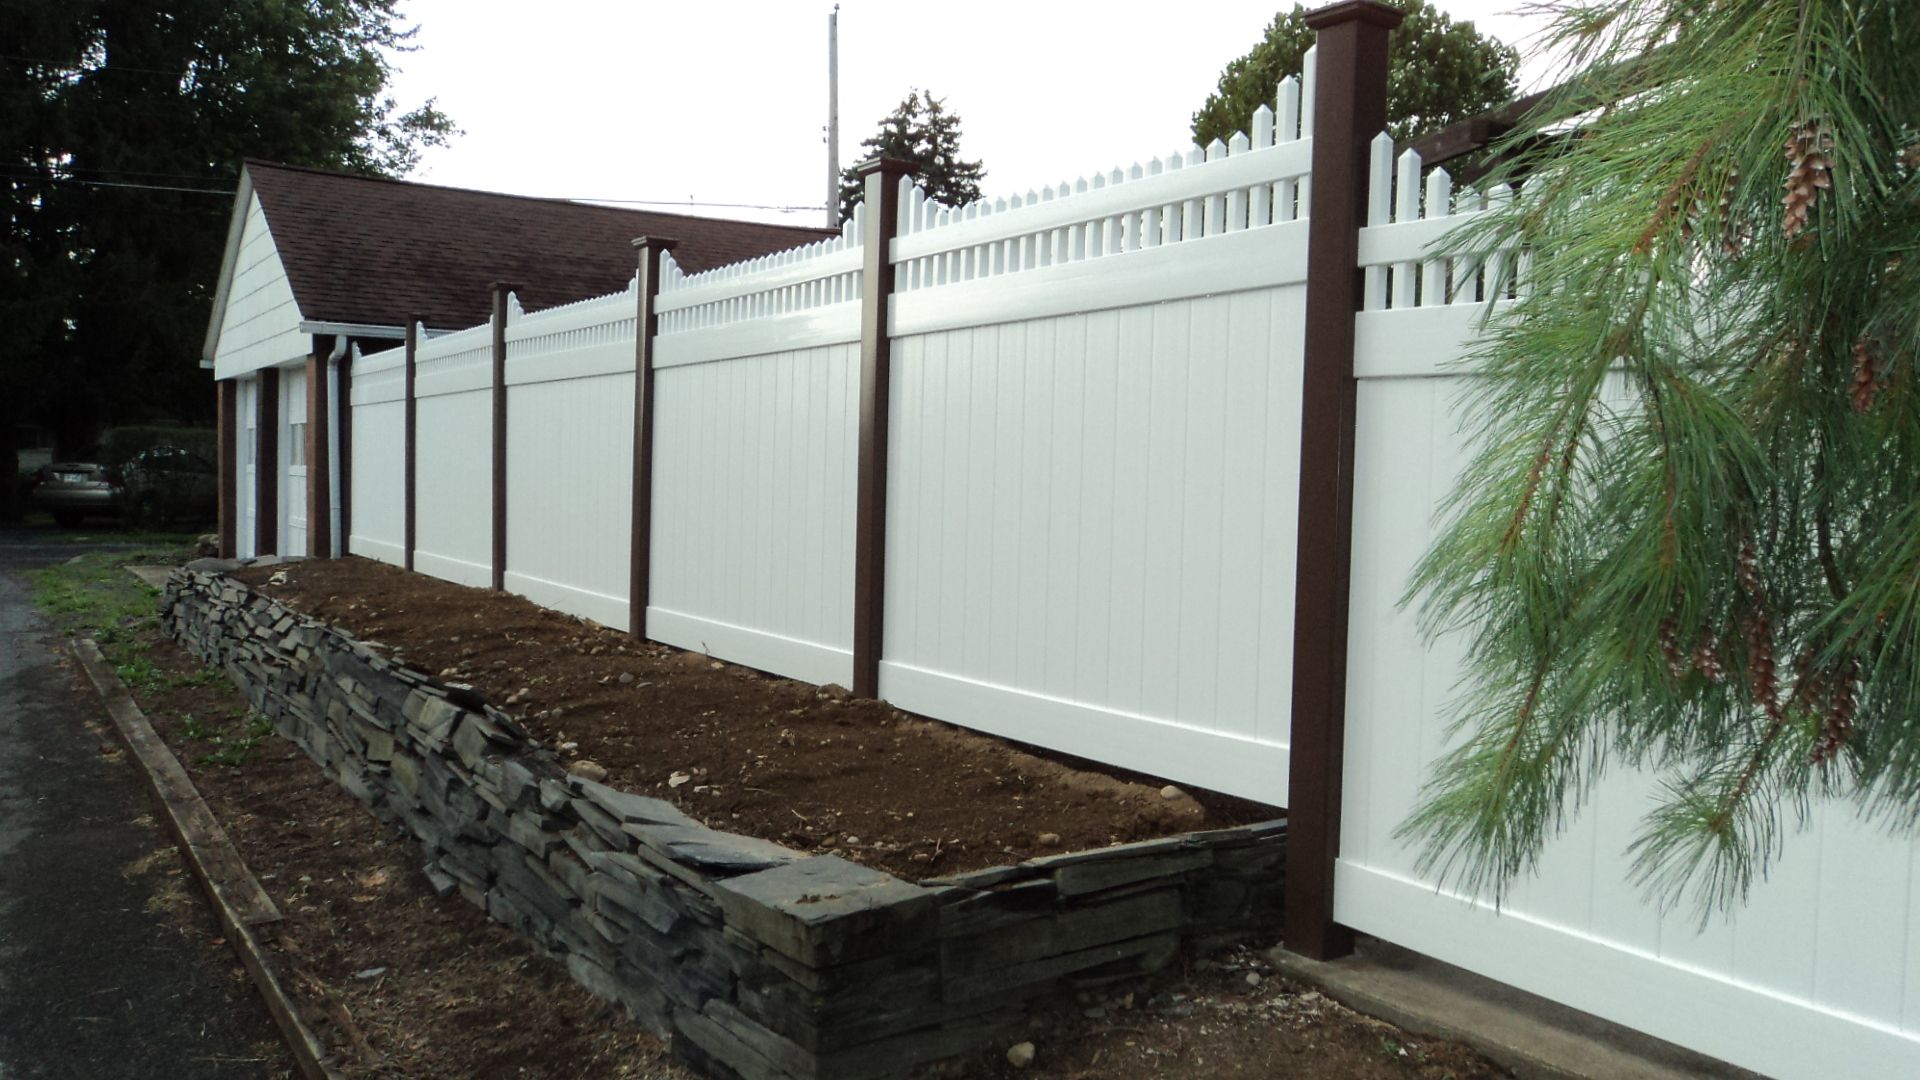 mix n match 6 high vinyl privacy fence in white panels and